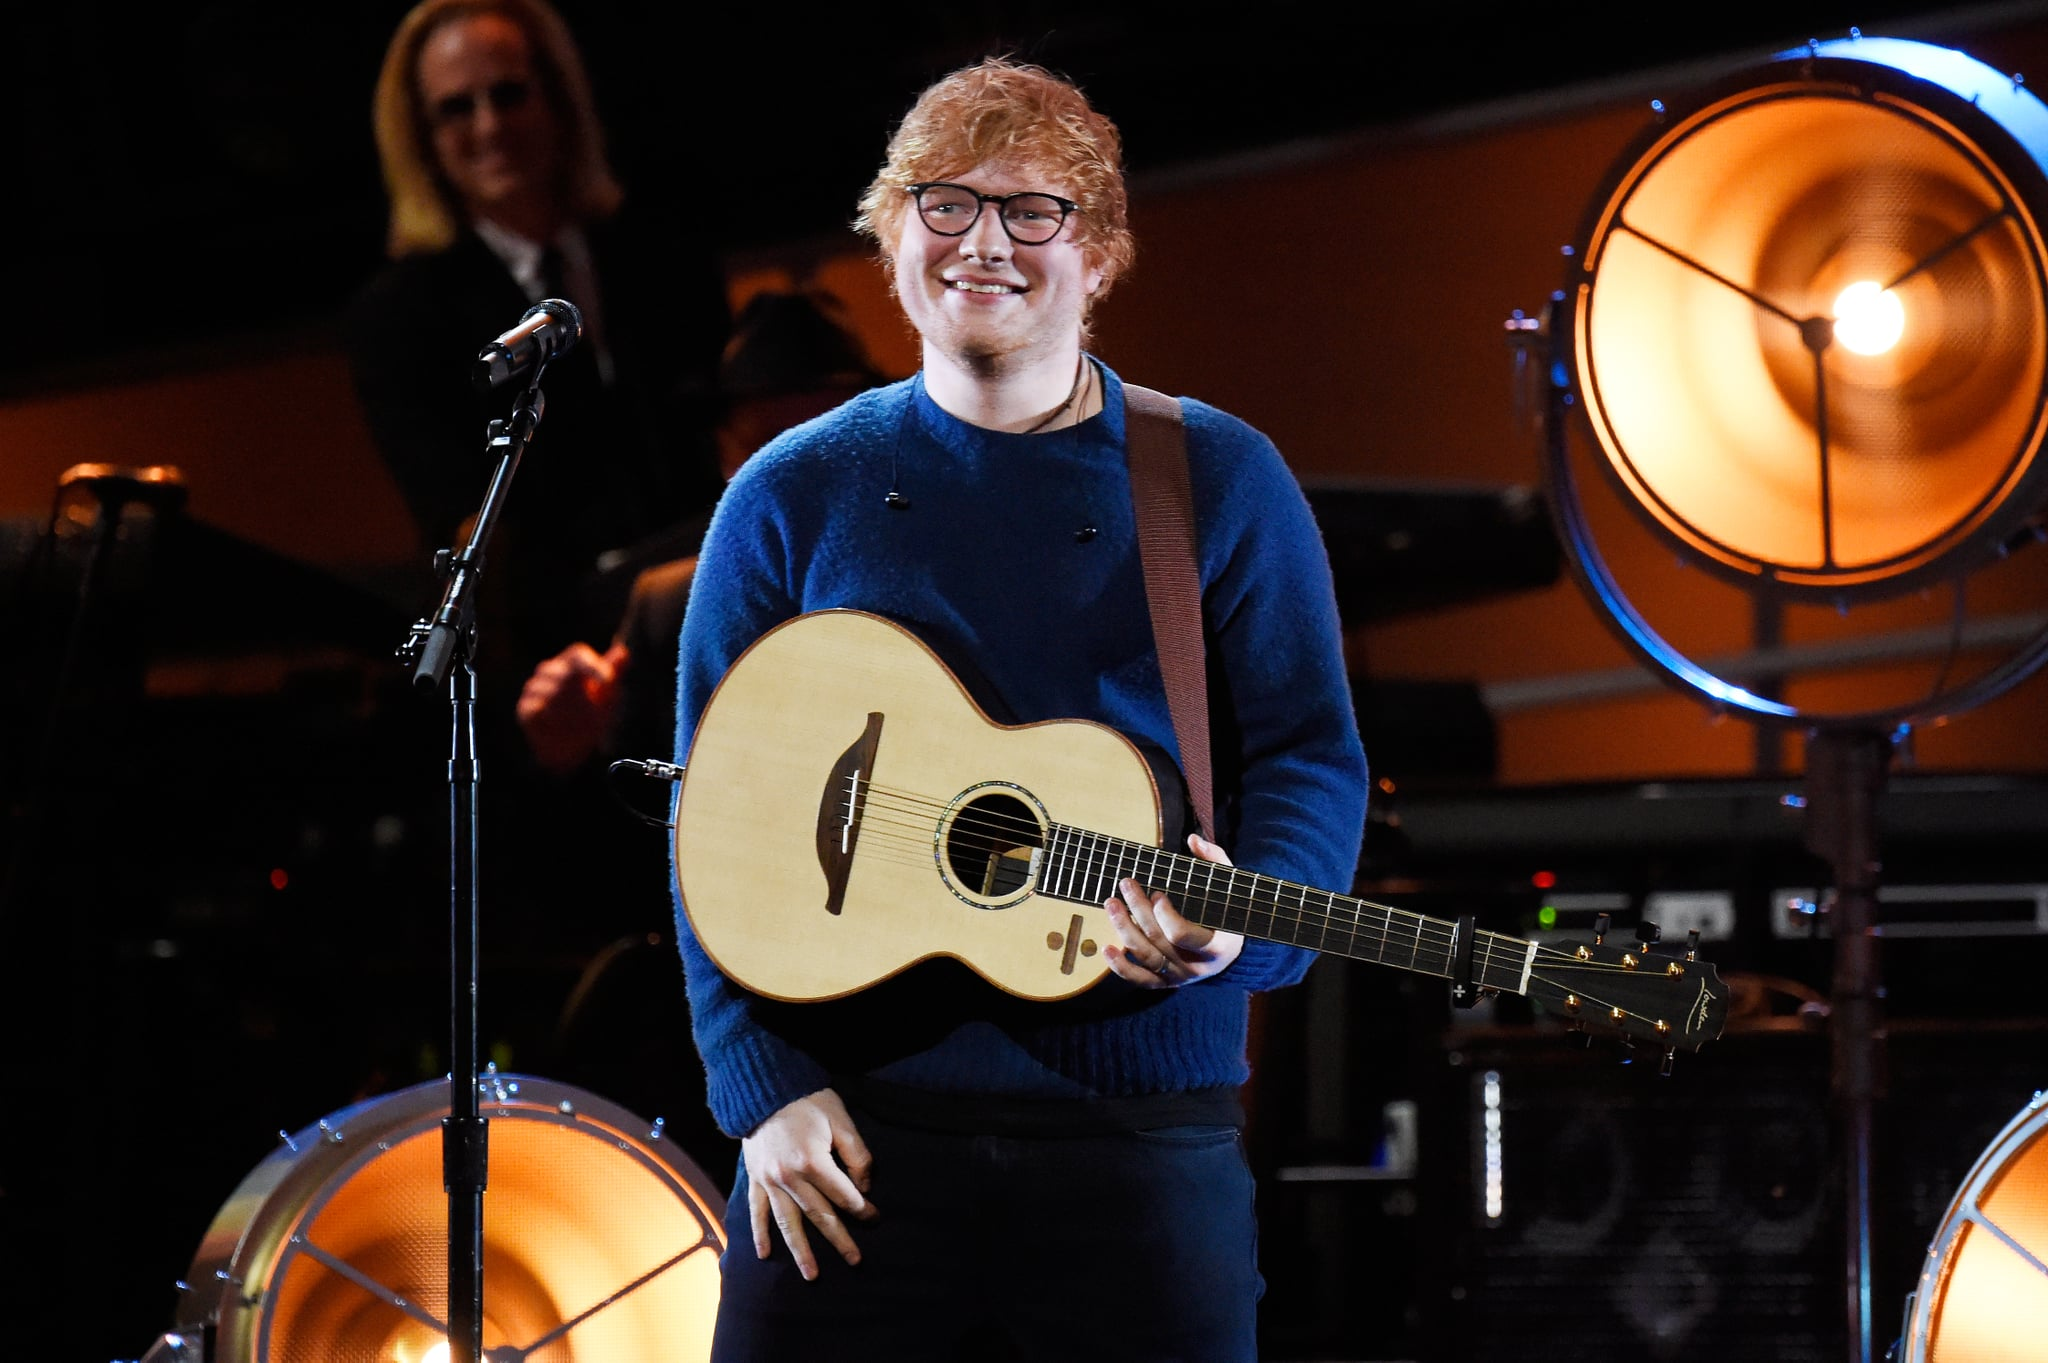 NEW YORK, NY - JANUARY 30:  Recording artist Ed Sheeran performs onstage during 60th Annual GRAMMY Awards - I'm Still Standing: A GRAMMY Salute To Elton John at the Theater at Madison Square Garden on January 30, 2018 in New York City.  (Photo by Kevin Mazur/Getty Images for NARAS)